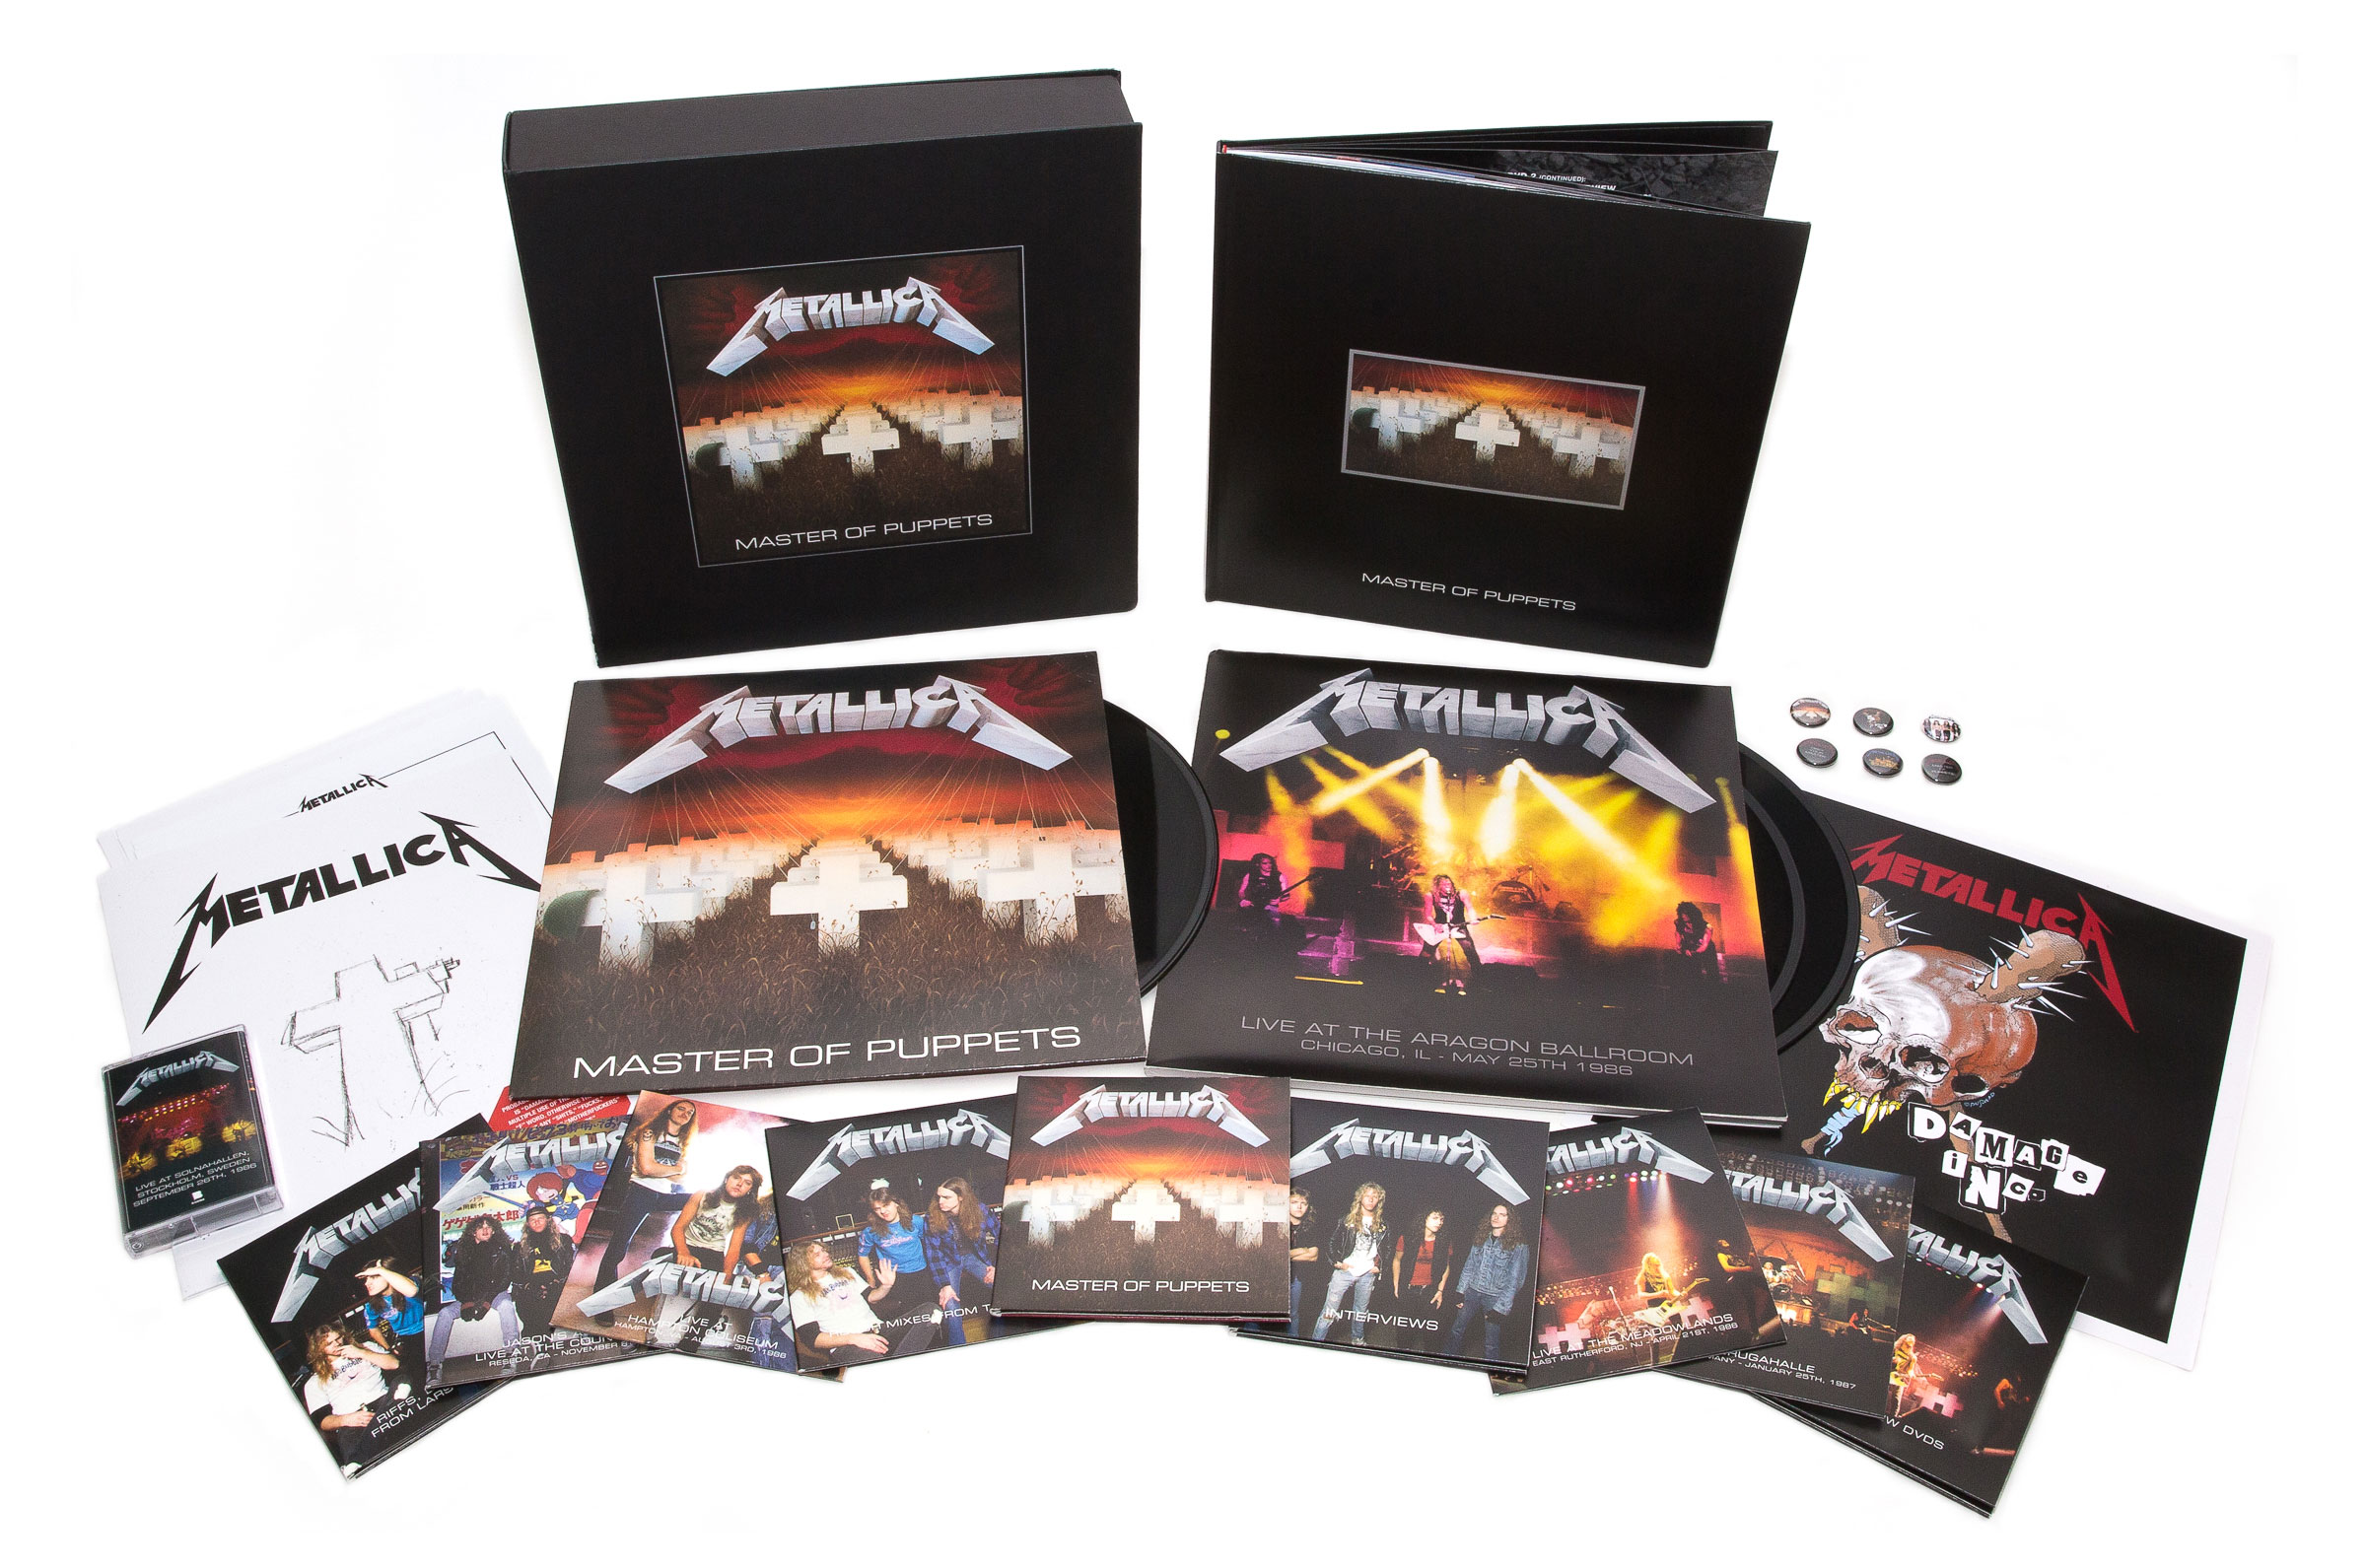 Metallica Master of Puppets reissue